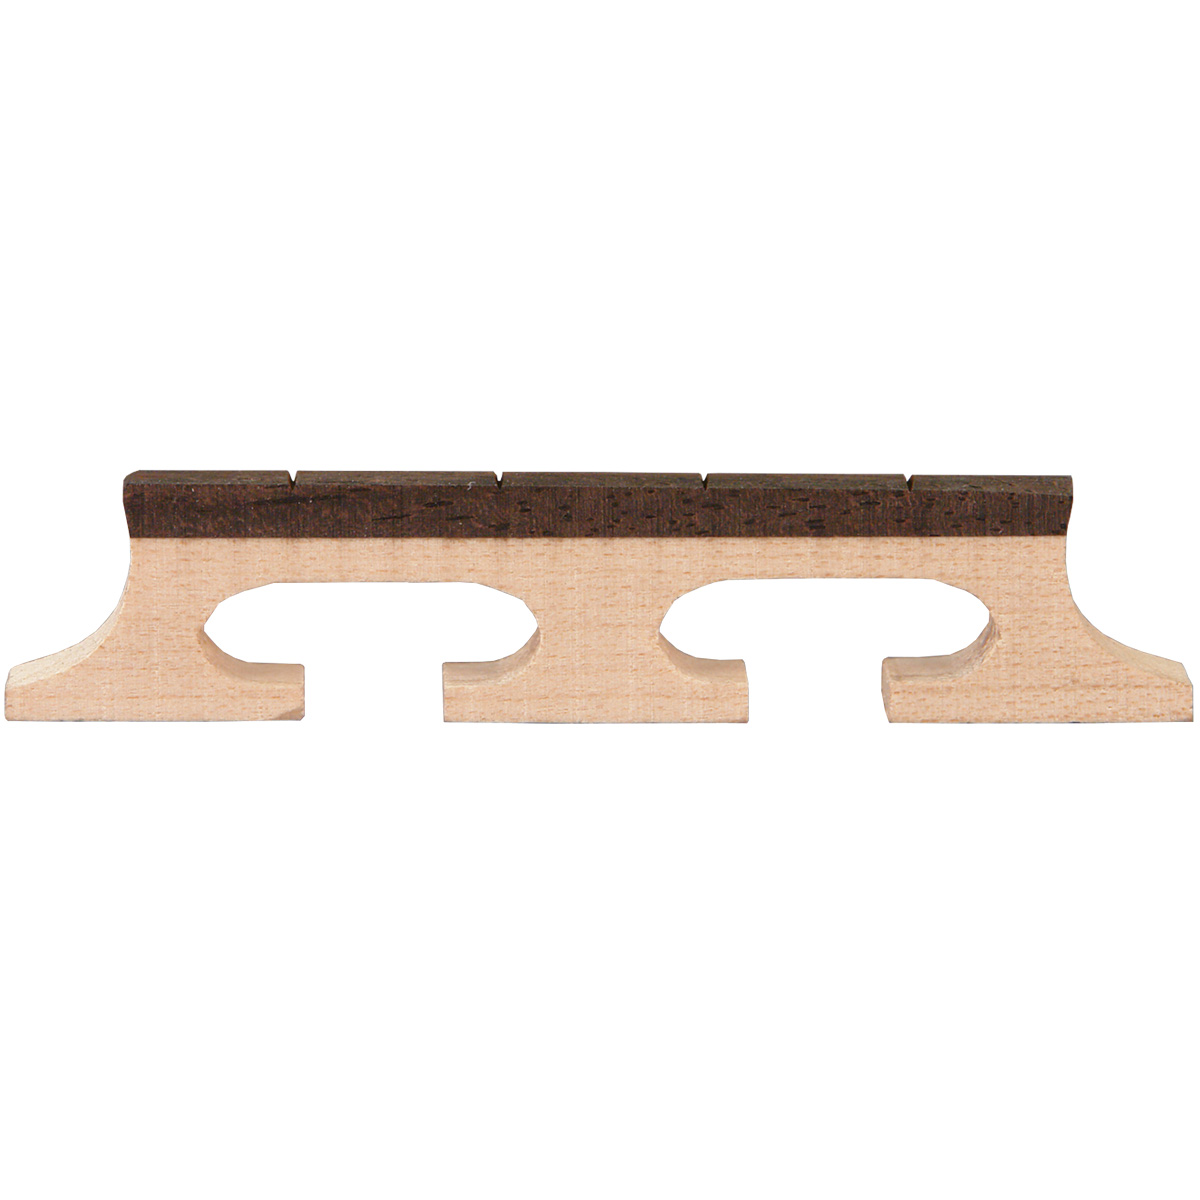 4-String Banjo Bridge: 5/8